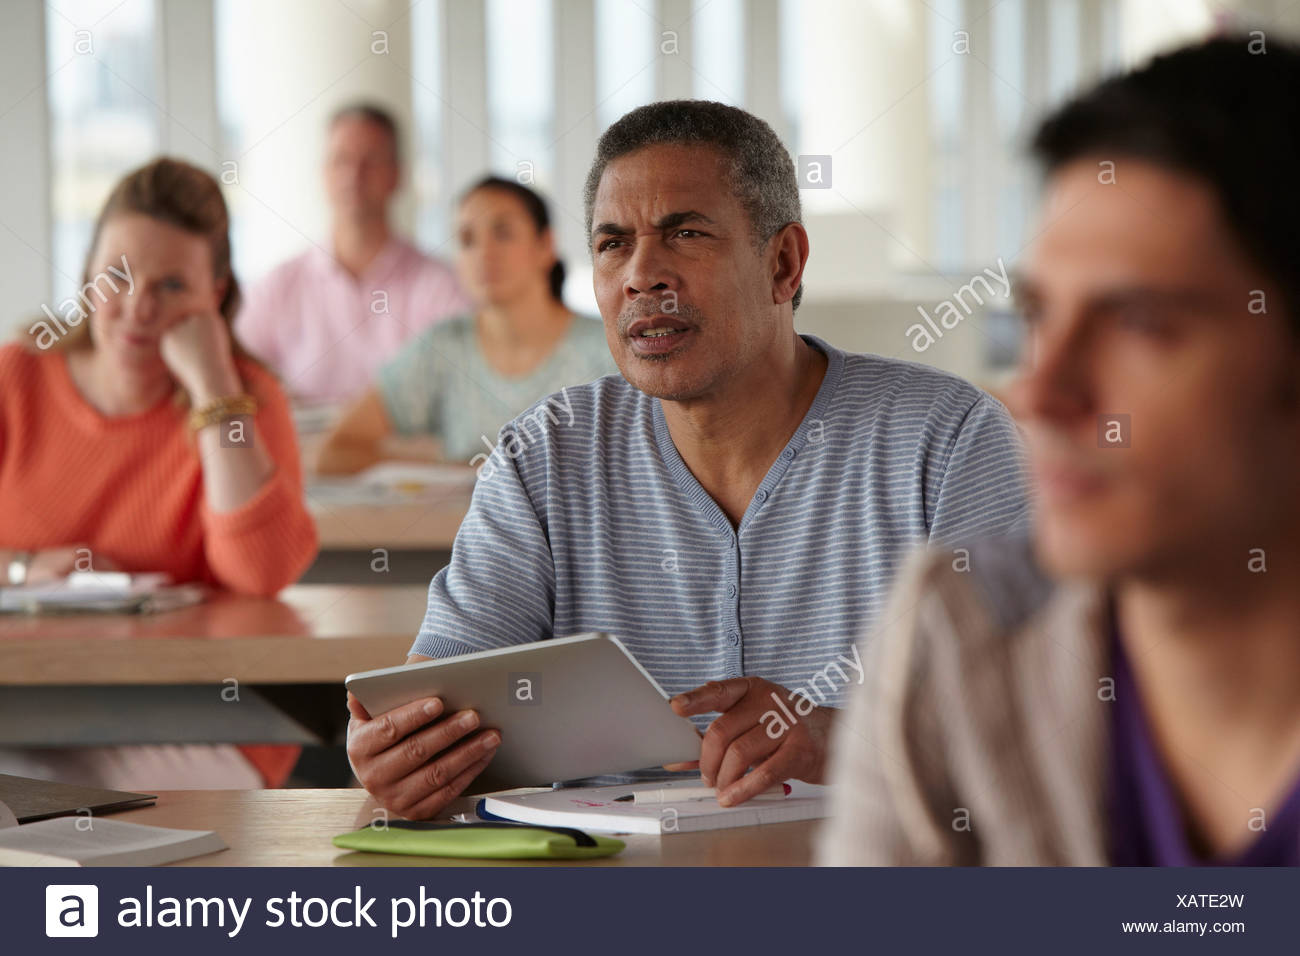 Man using digital tablet in class - Stock Image